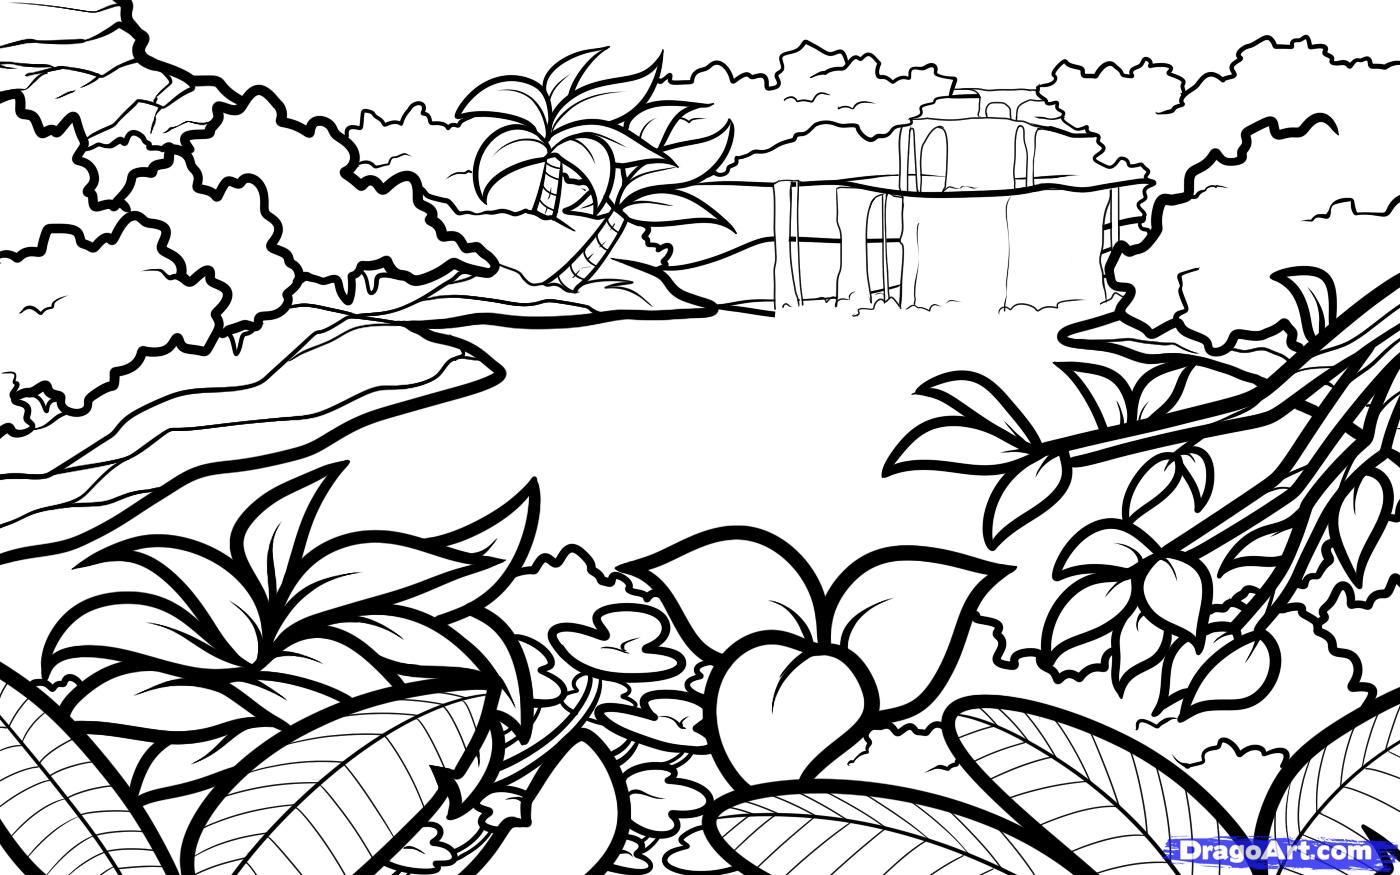 1400x875 Easy Landscape Drawings Step By Step